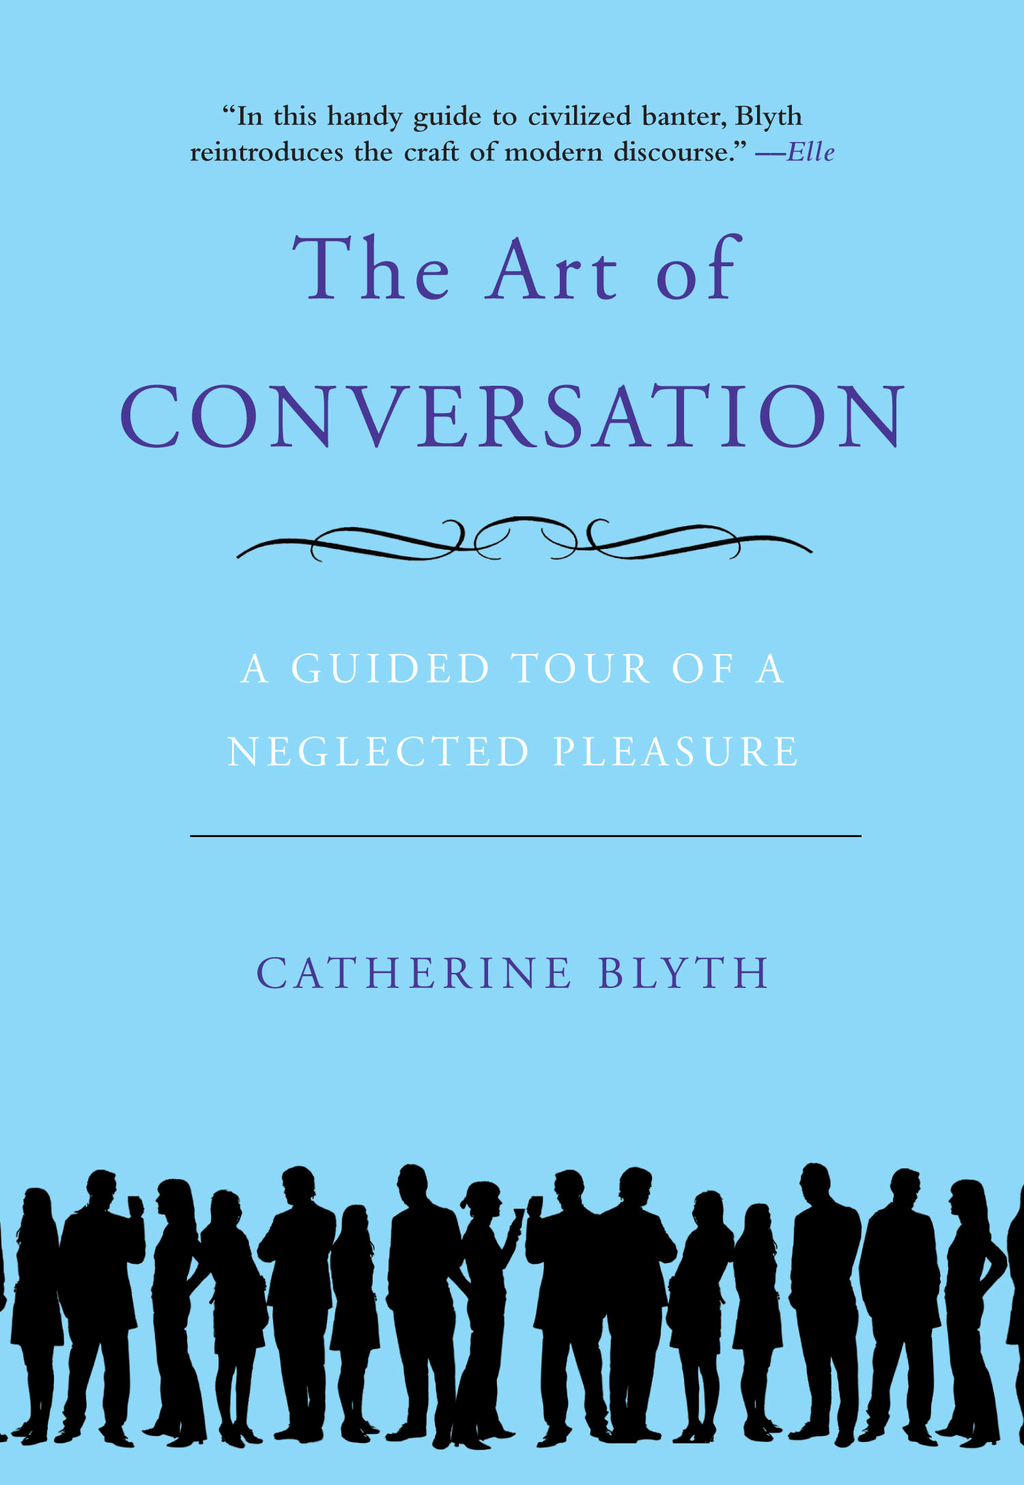 The Art of Conversation By: Catherine Blyth